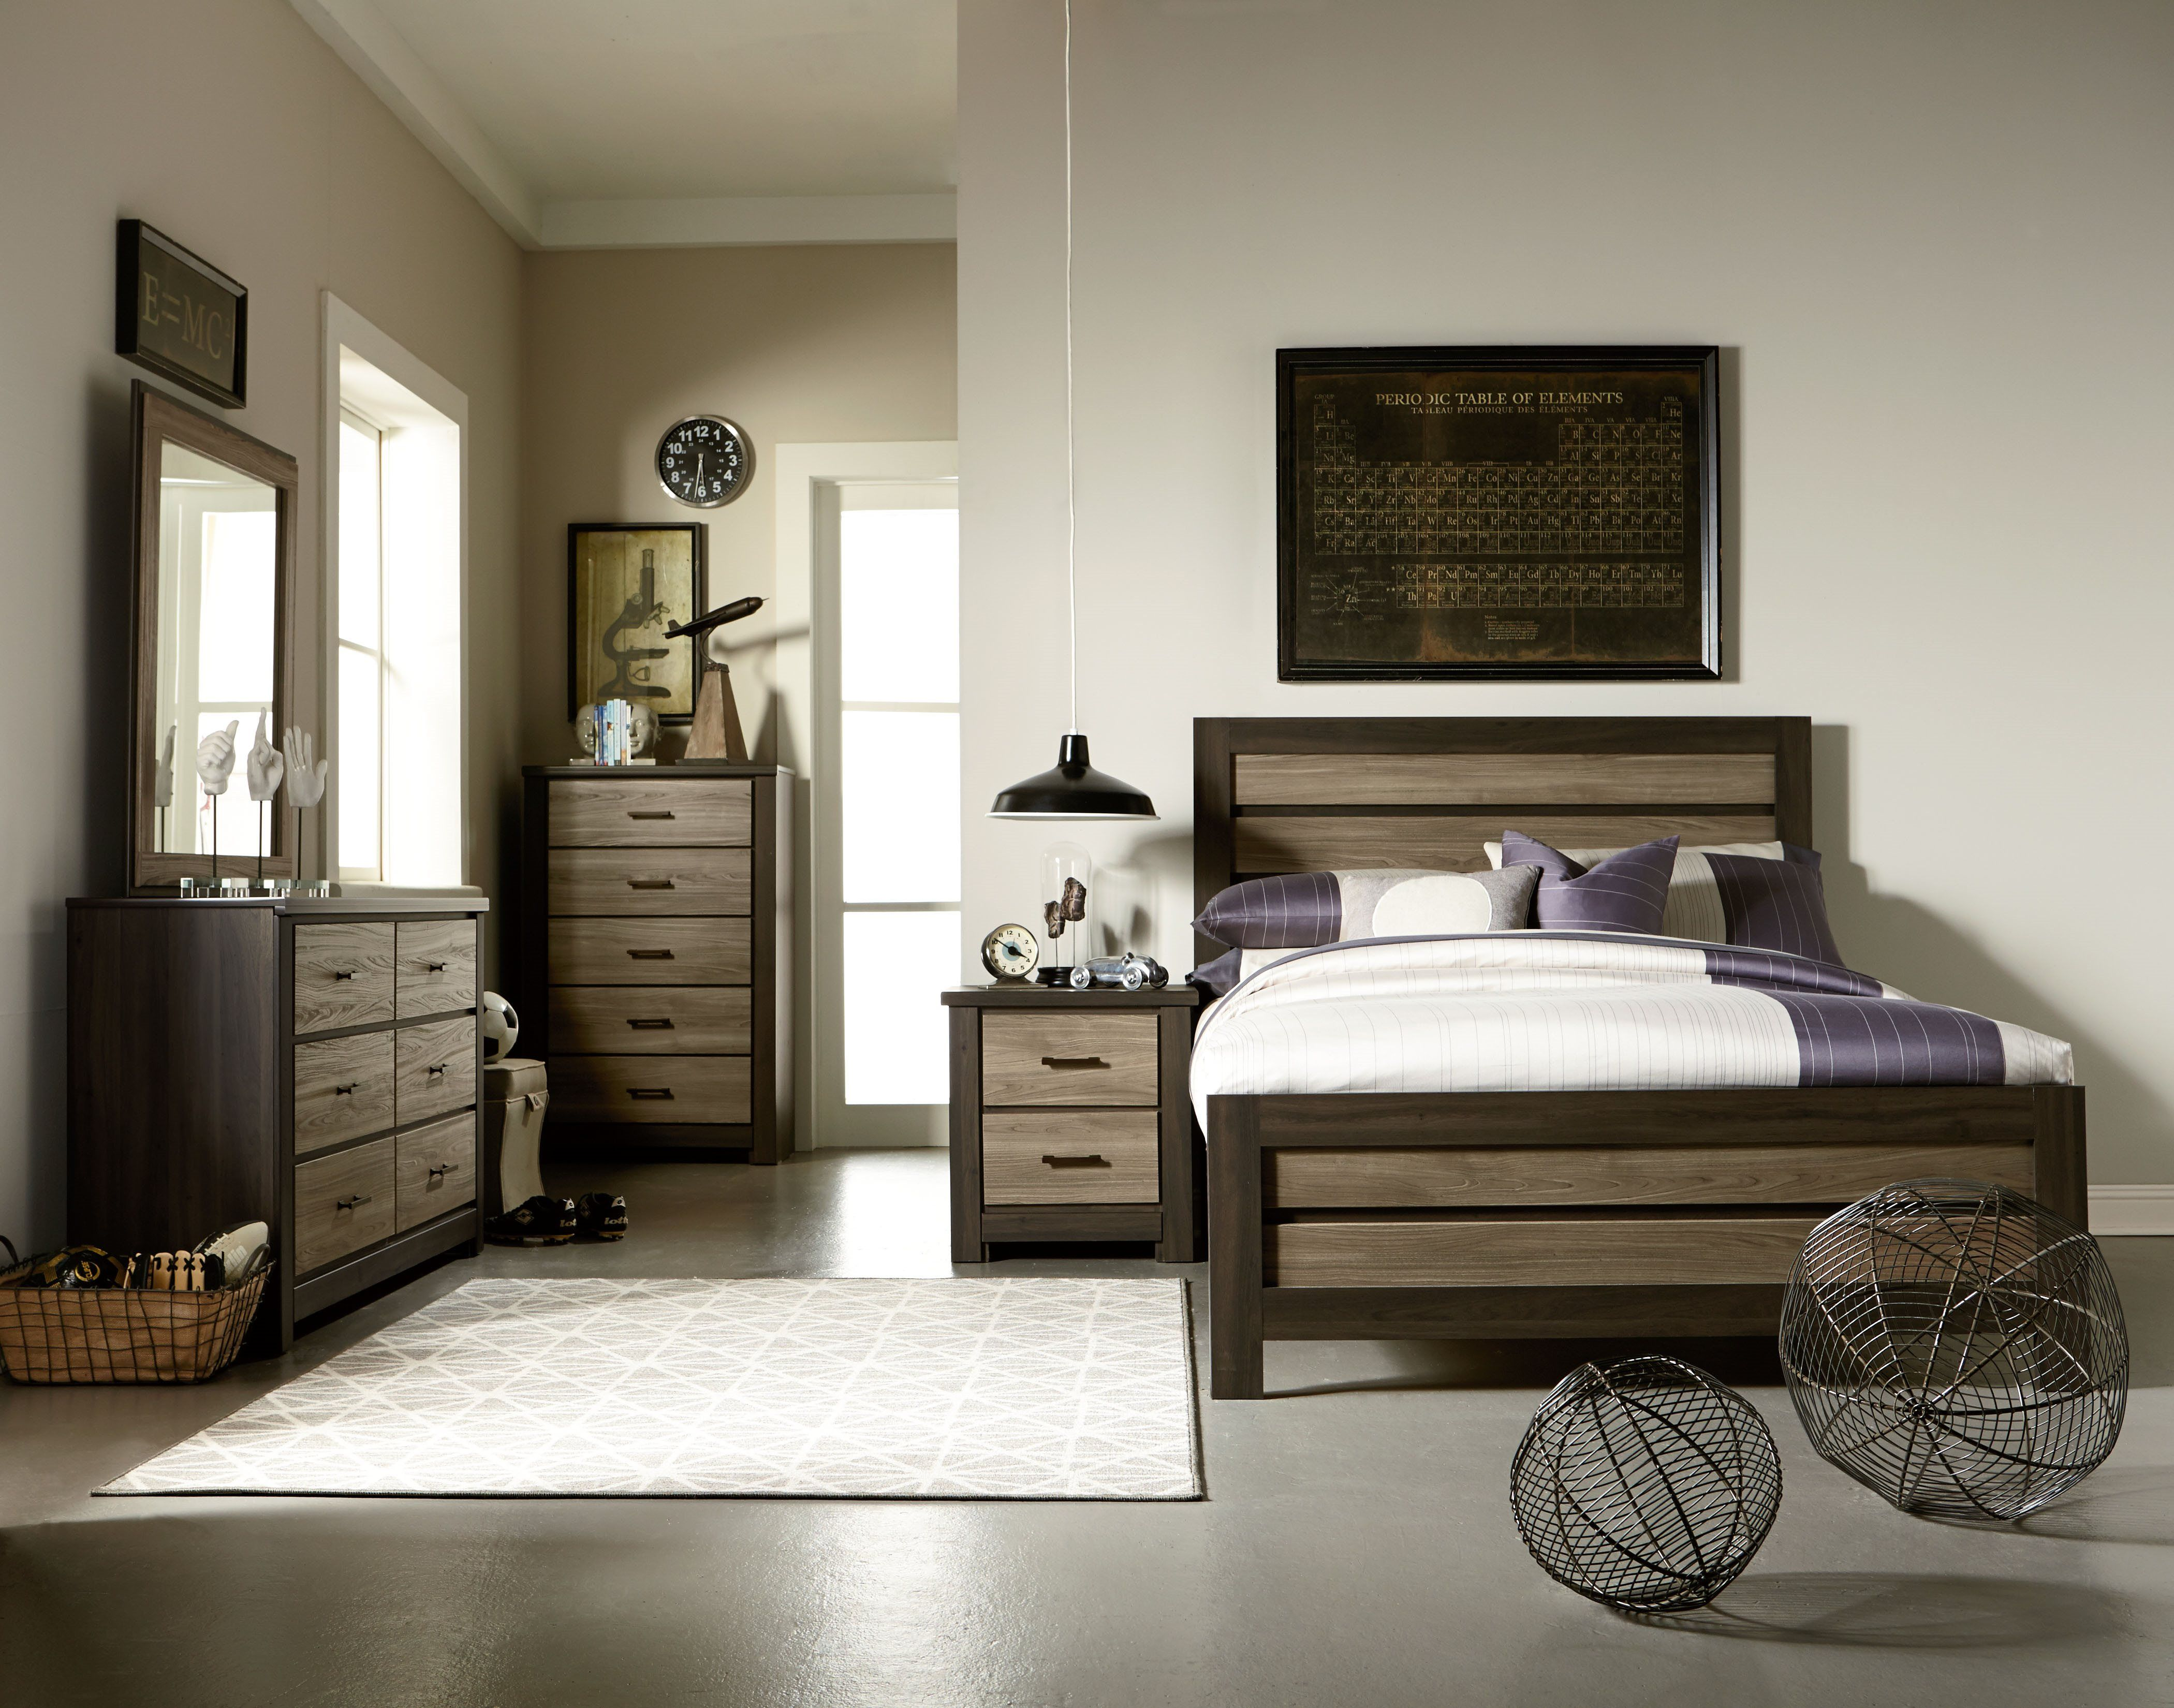 Darvin Furniture Orland Park, Chicago, IL | duggers room ...